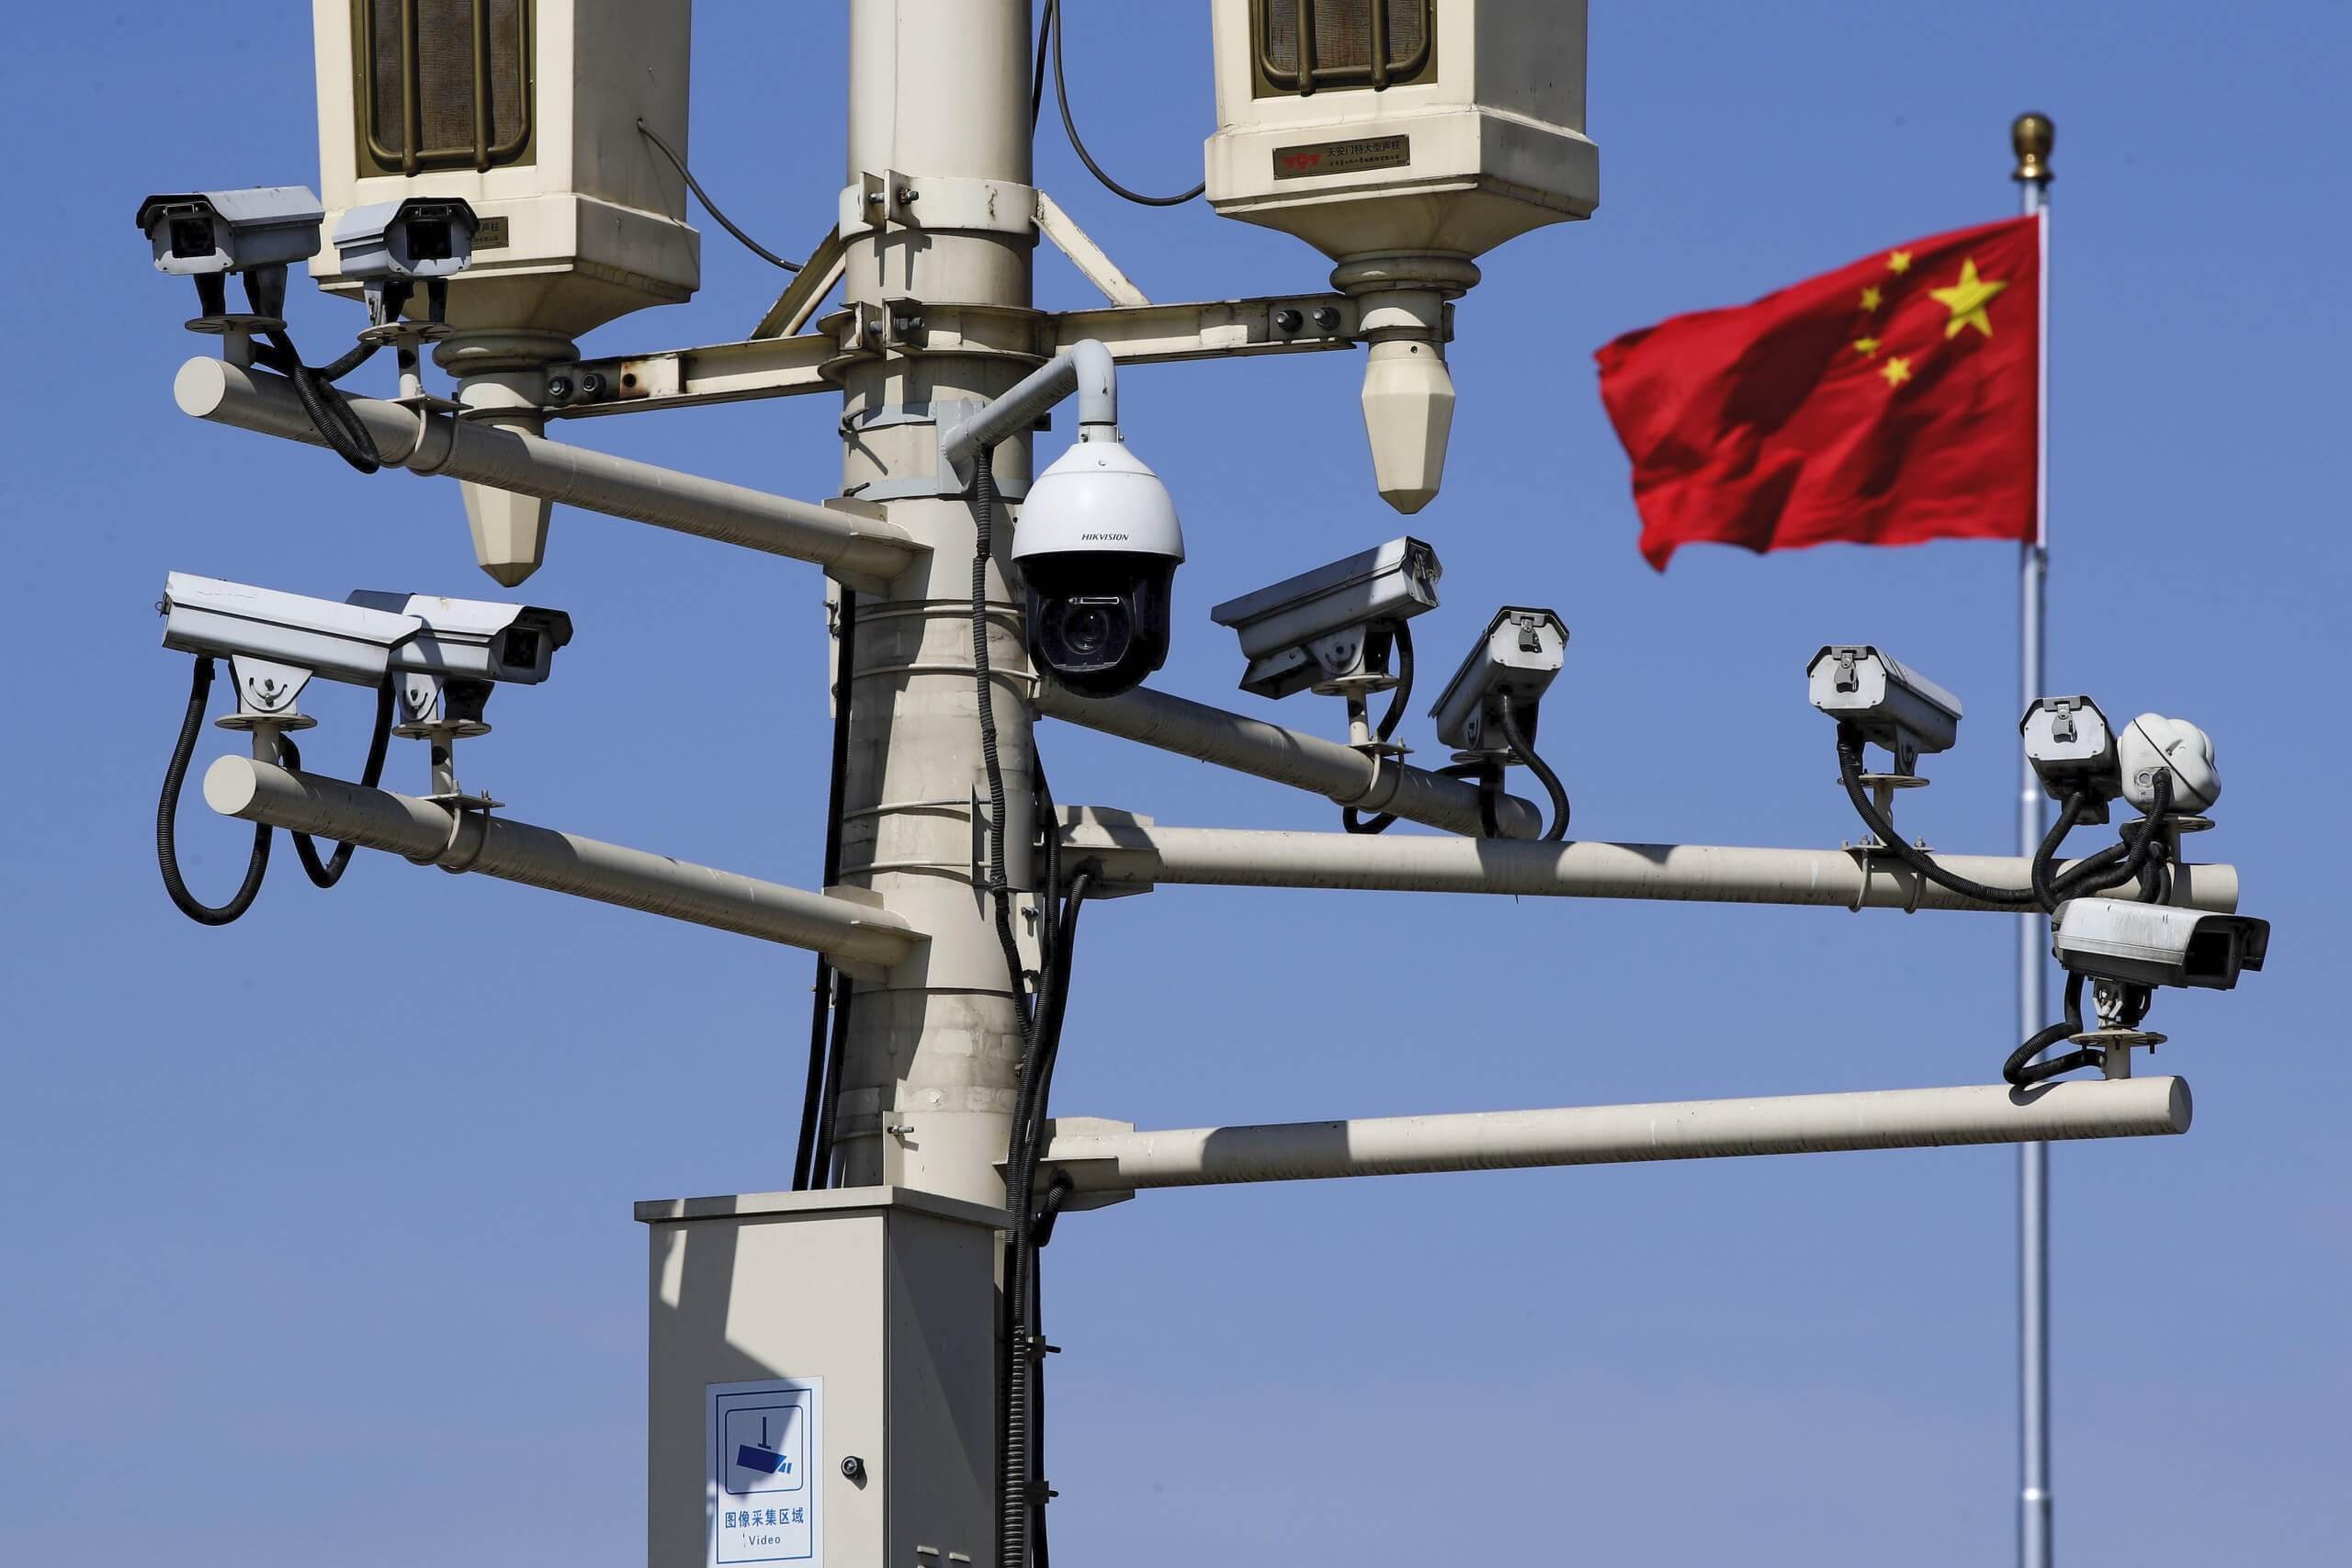 China is testing emotion recognition systems in Xinjiang